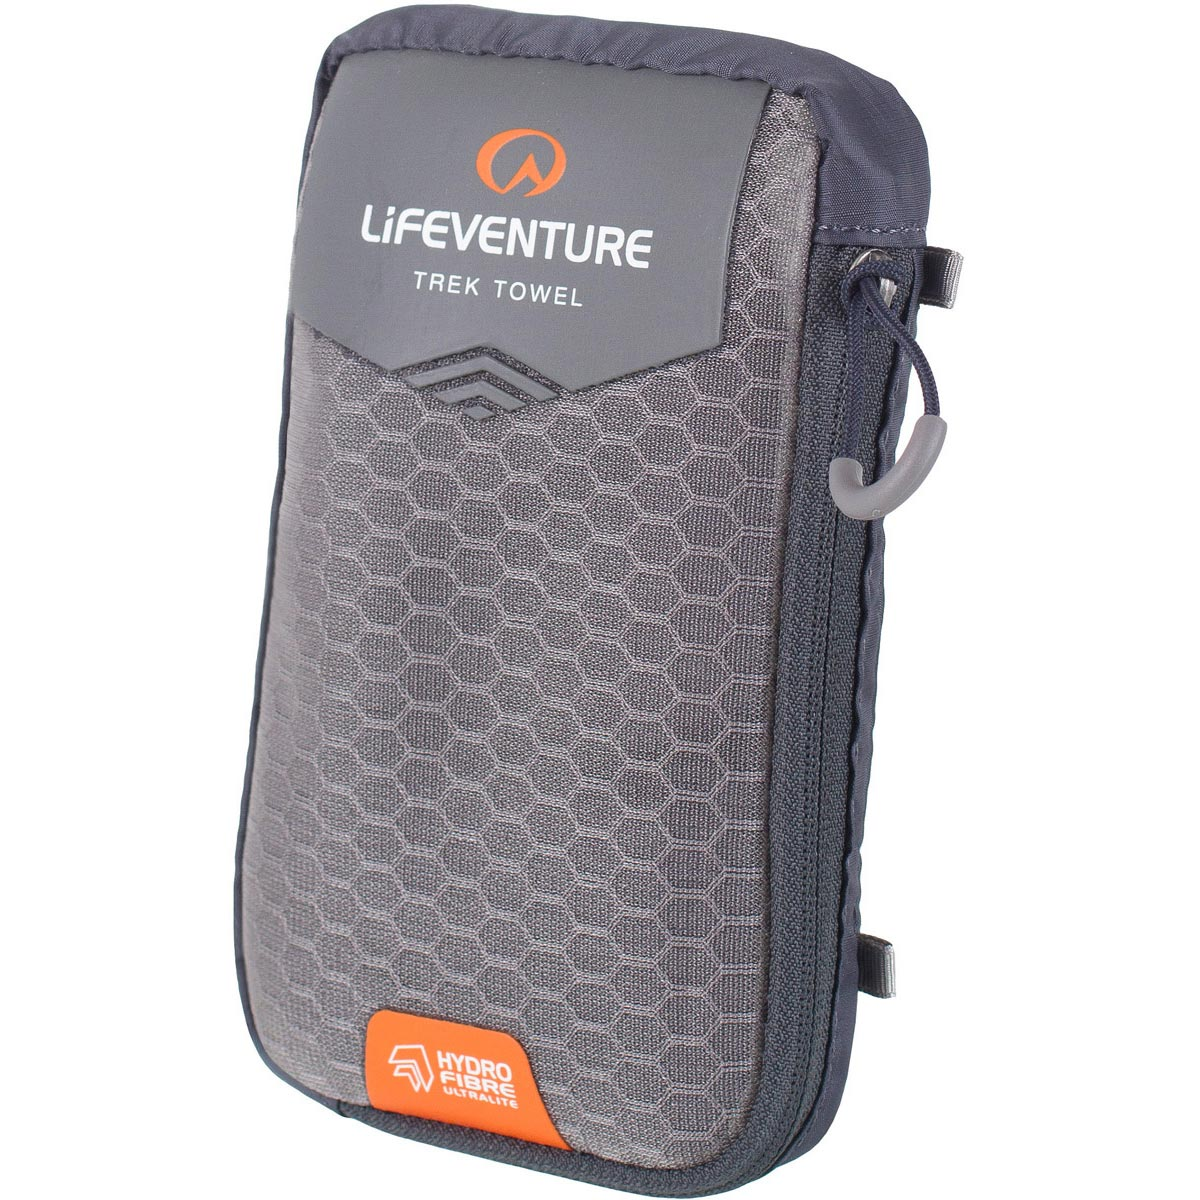 Lifeventure HydroFibre Trek Towel X-Large - Grey